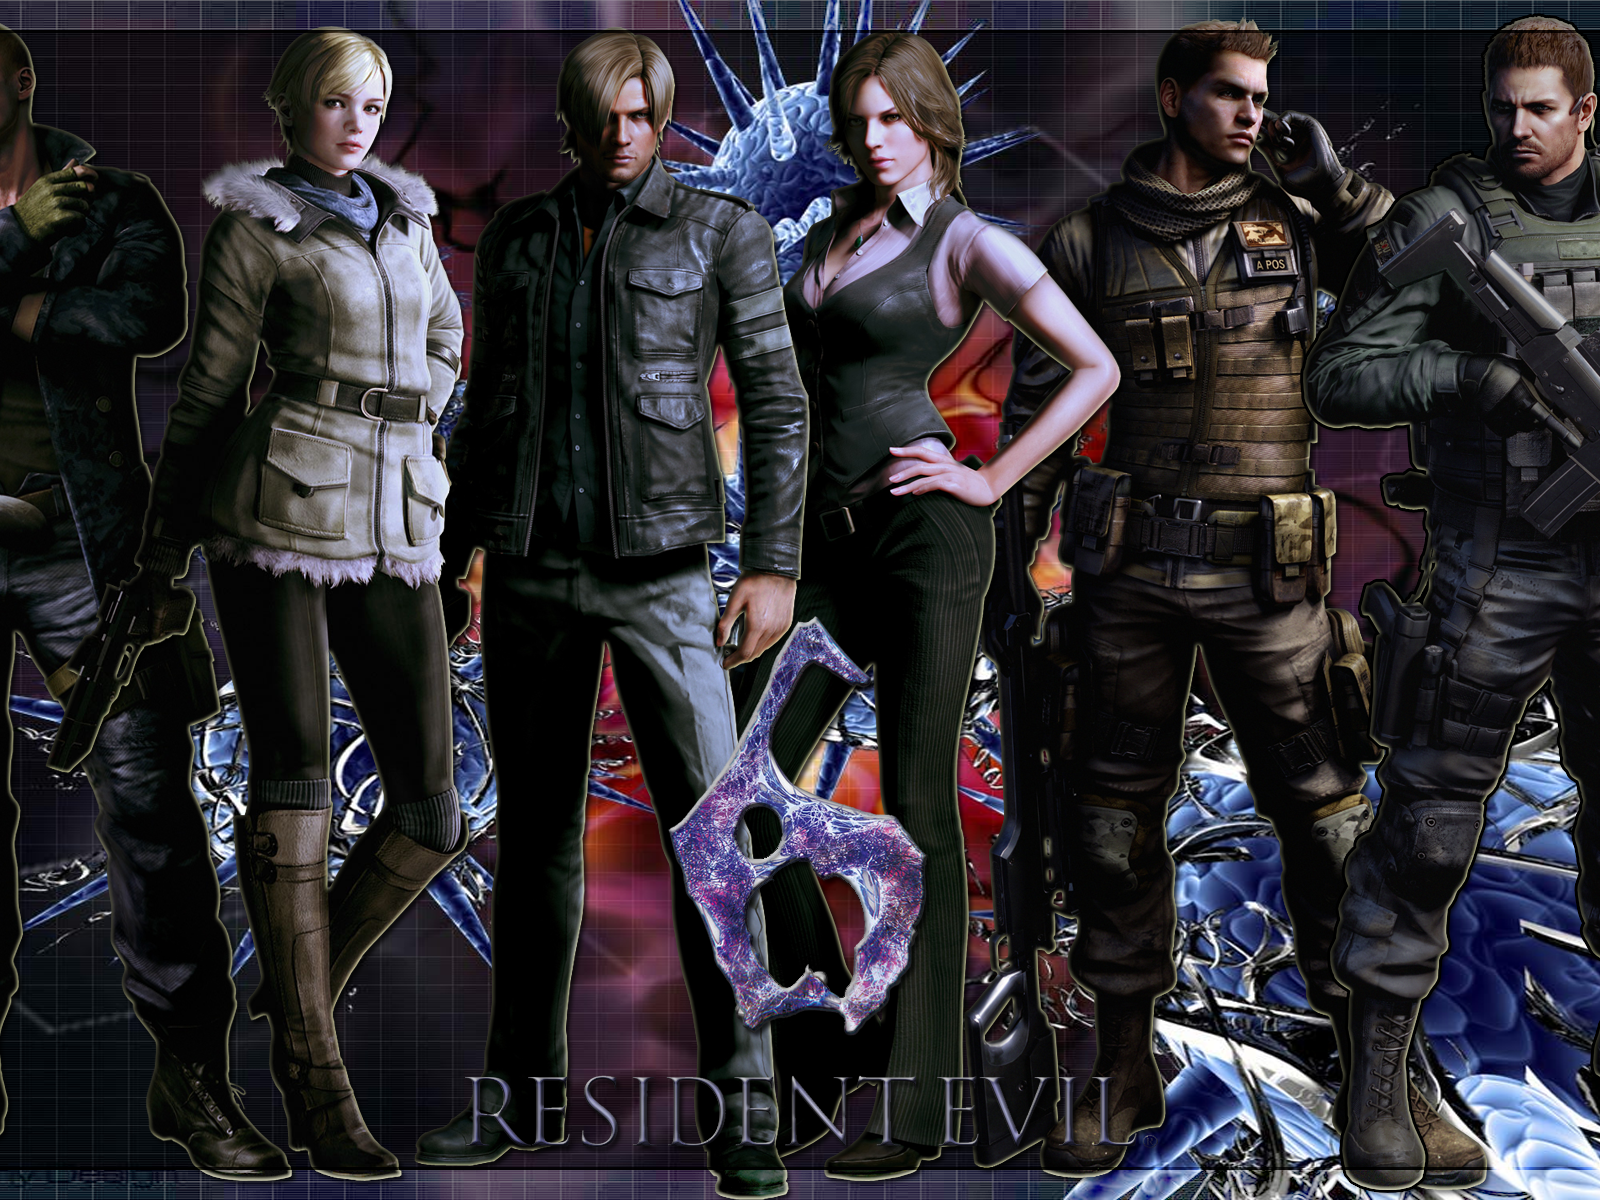 Resident Evil 6 Wallpapers Posted By Zoey Johnson